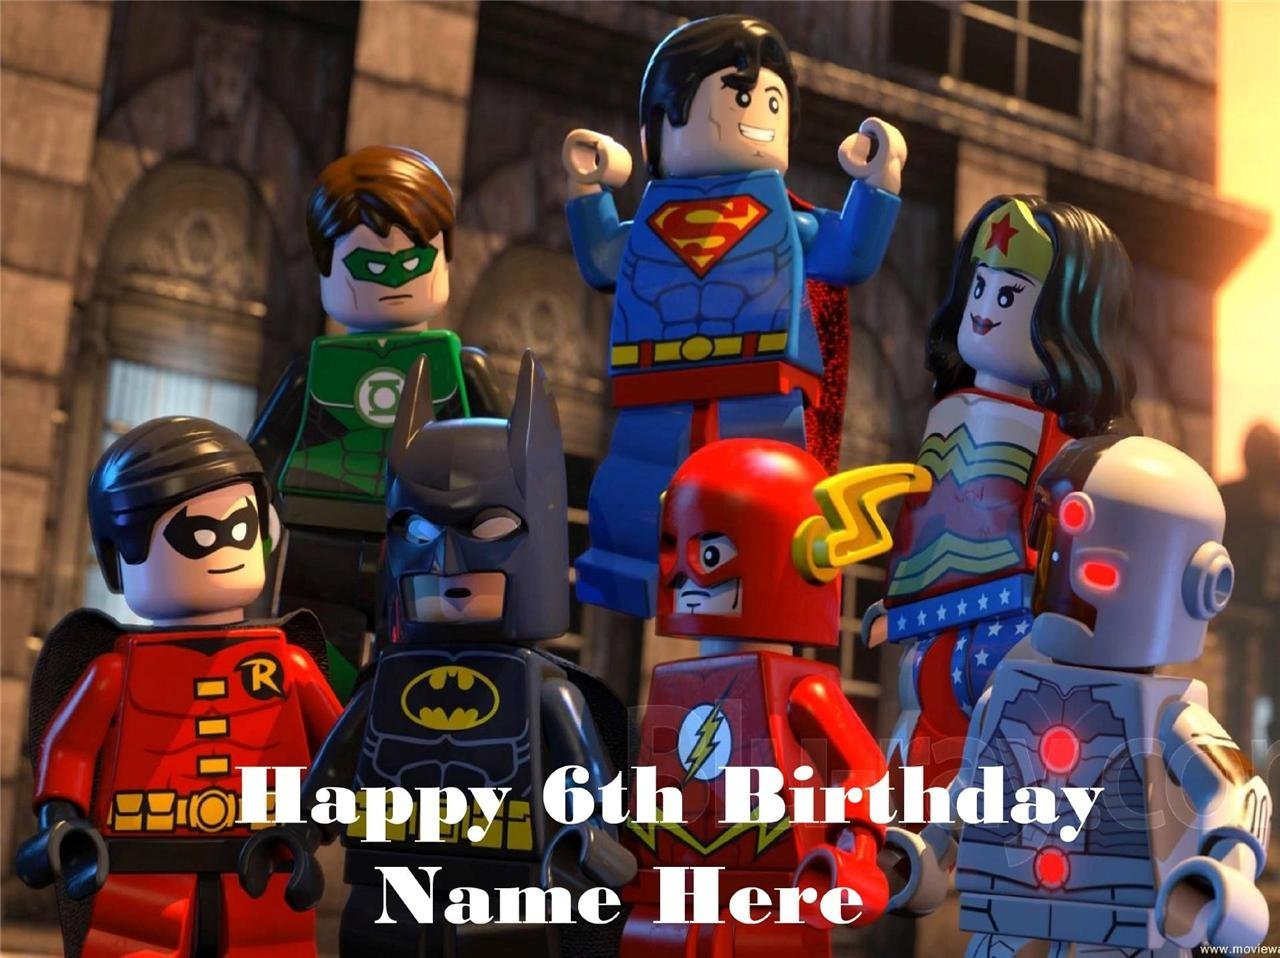 Lego Super Heroes edible icing cake toppers. View 3 images Select + personalise! image 3